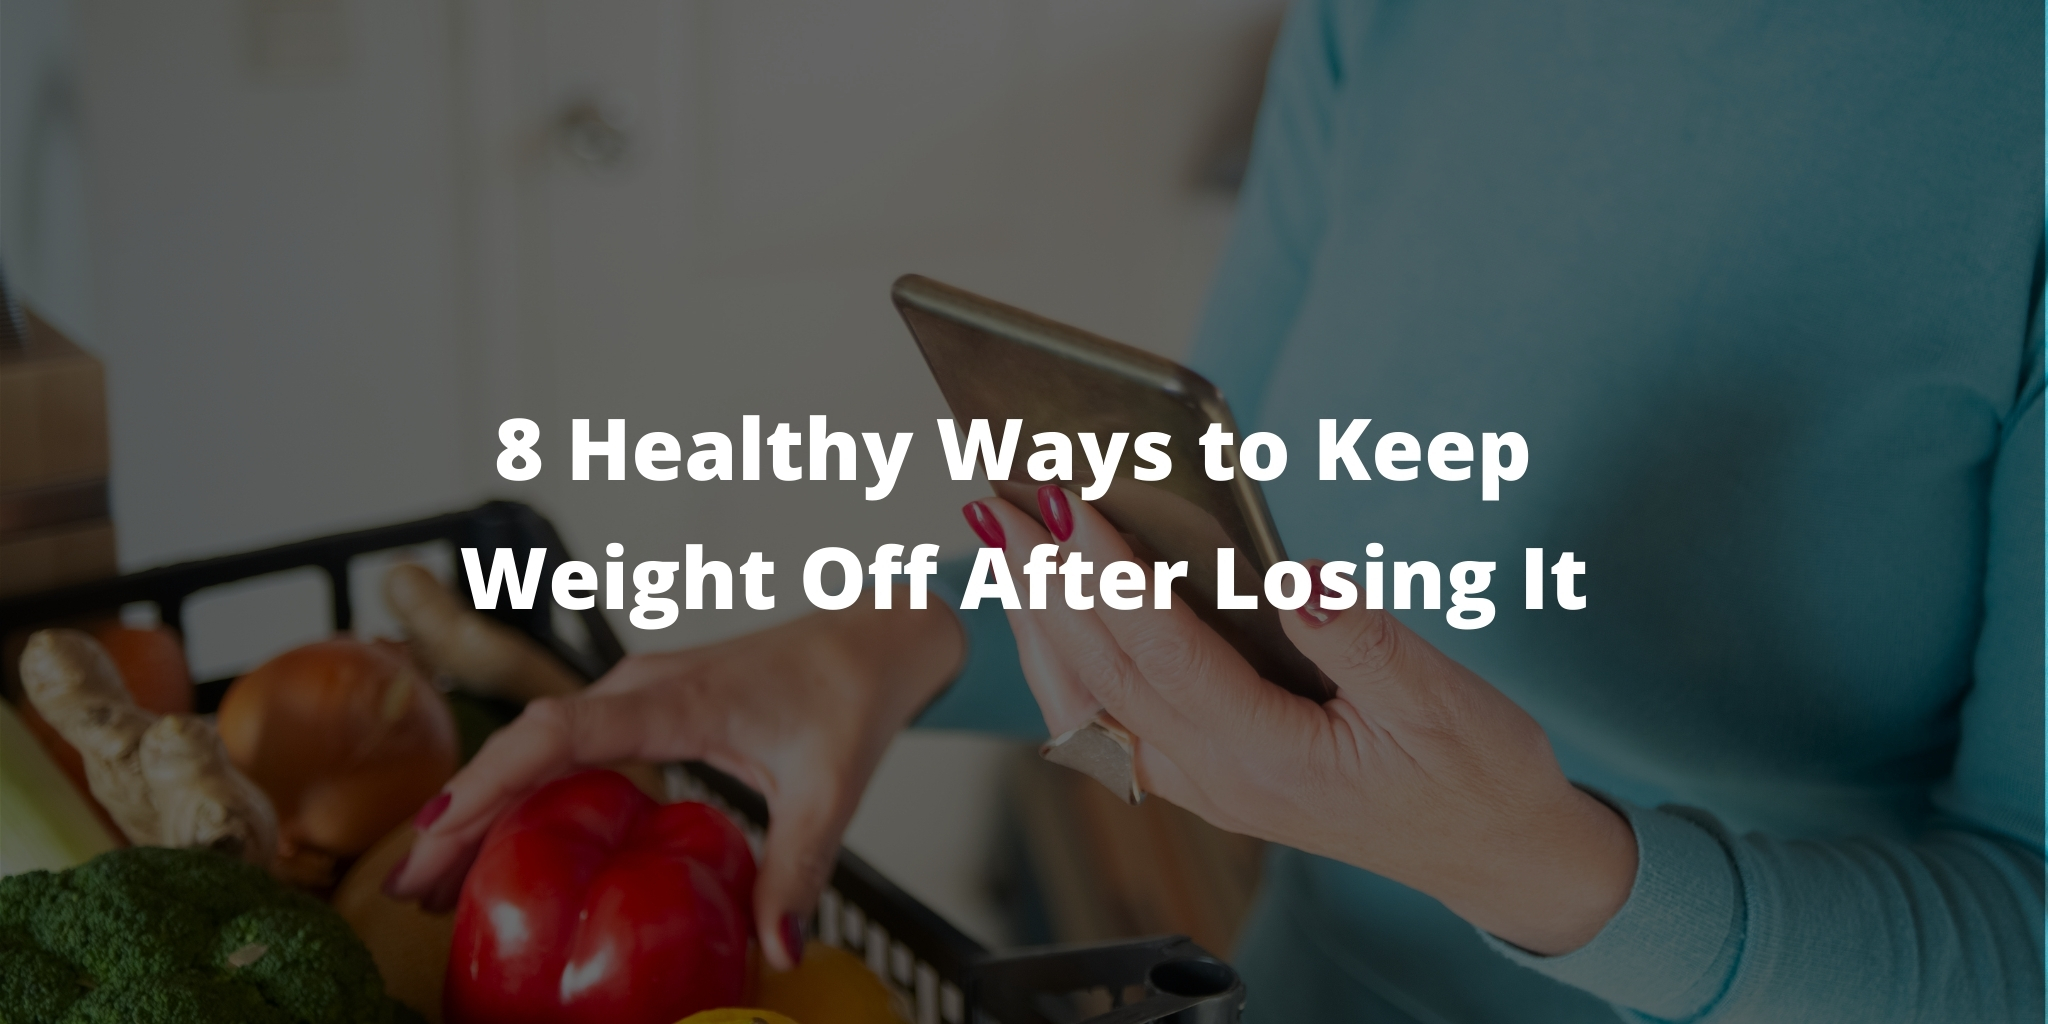 8 Healthy Ways to Keep Weight Off After Losing It